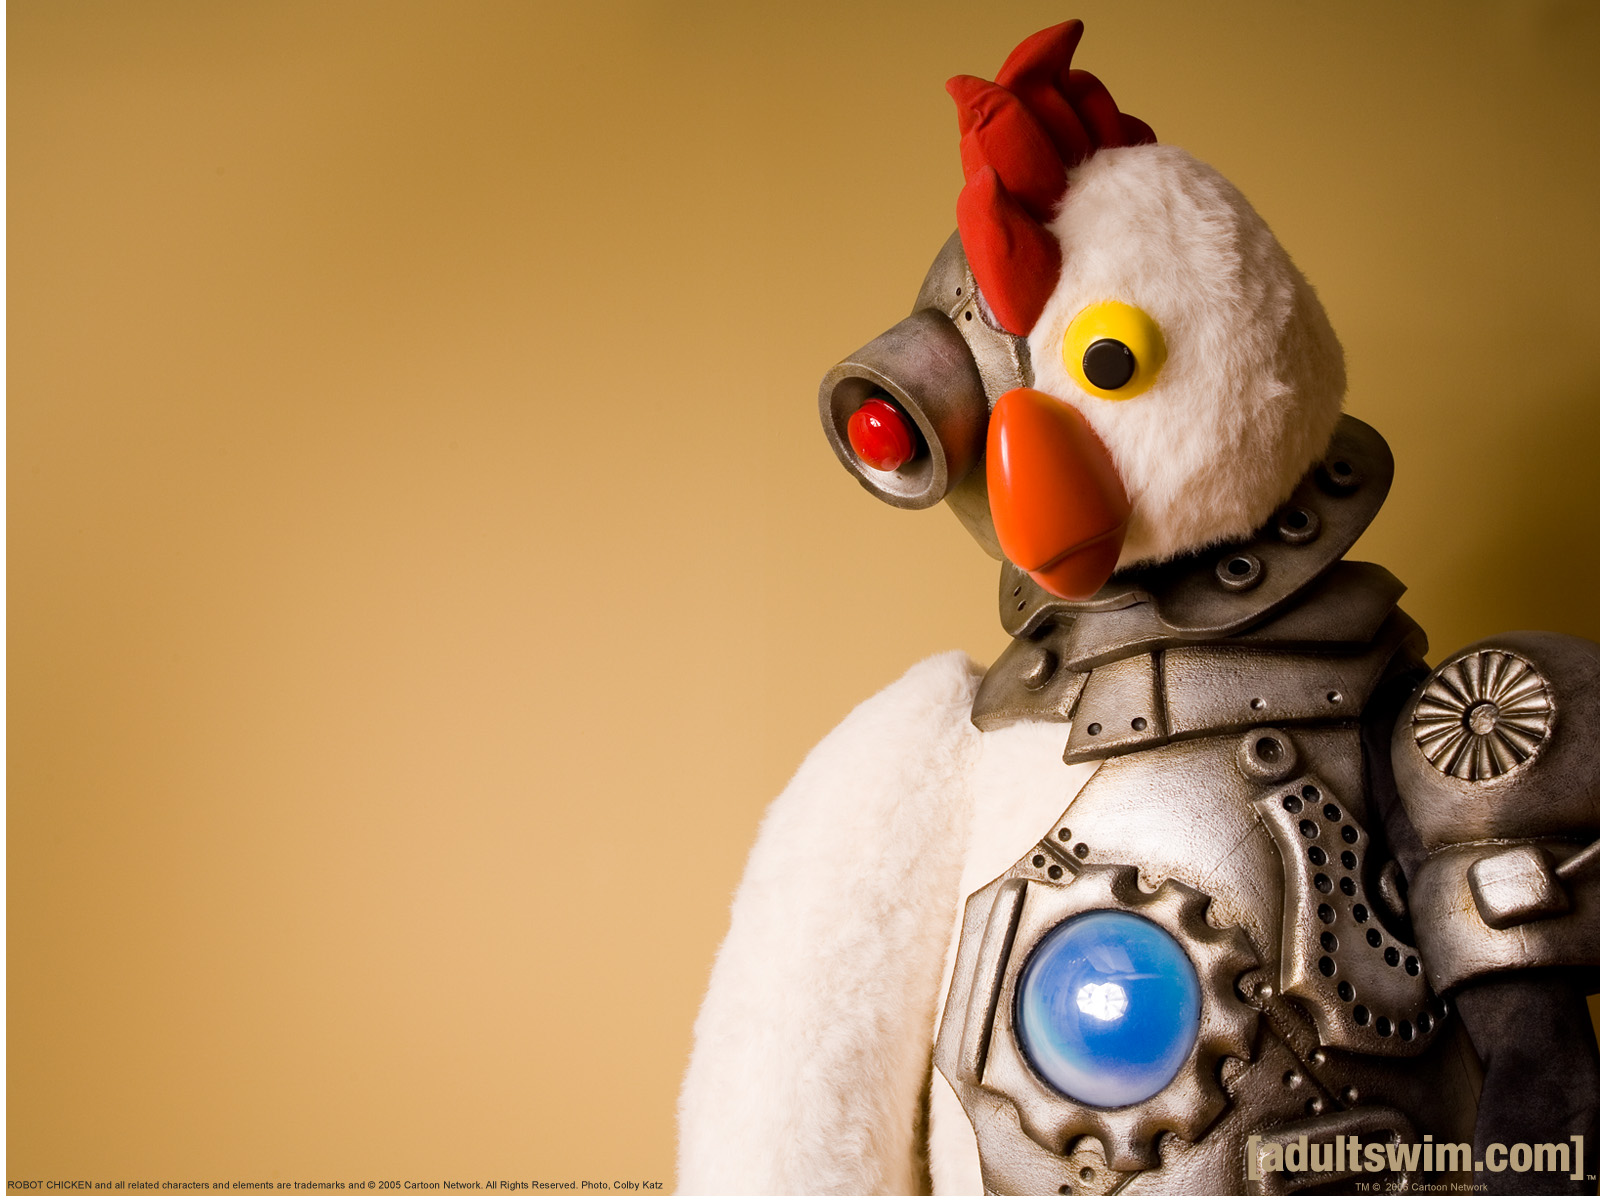 96 Robot Chicken Wallpapers On Wallpapersafari